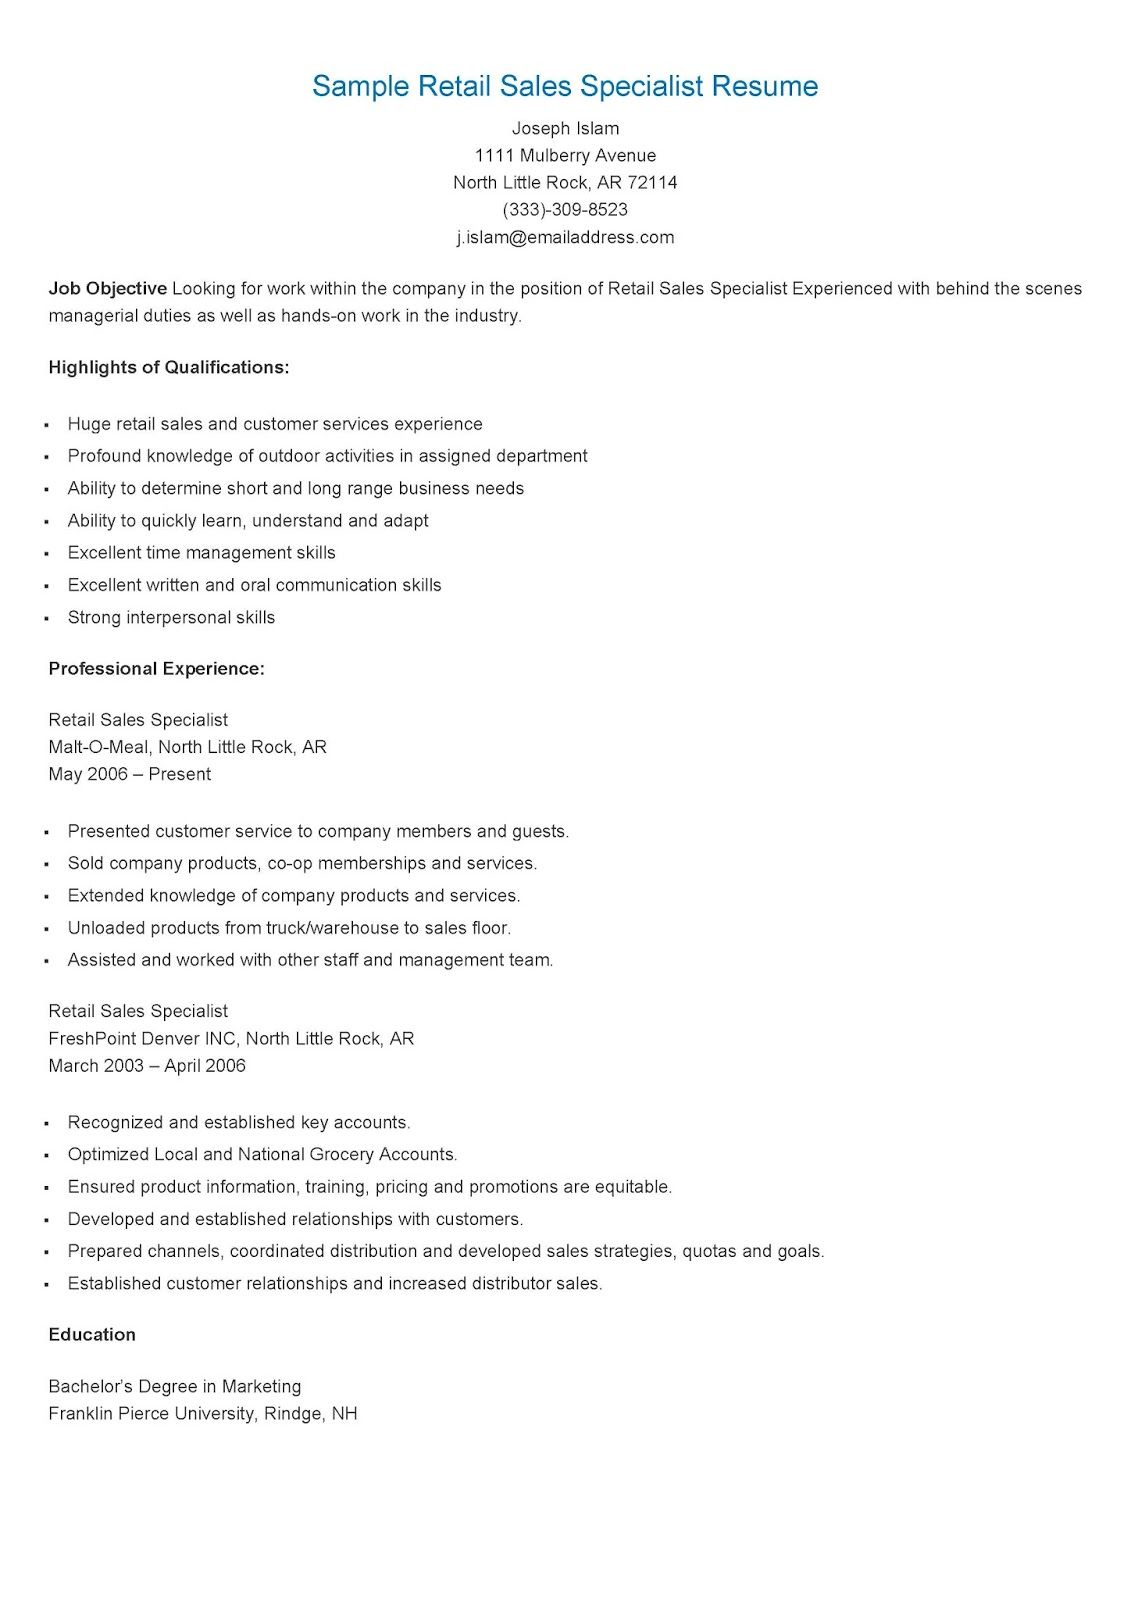 Sample Retail Sales Specialist Resume  Resame